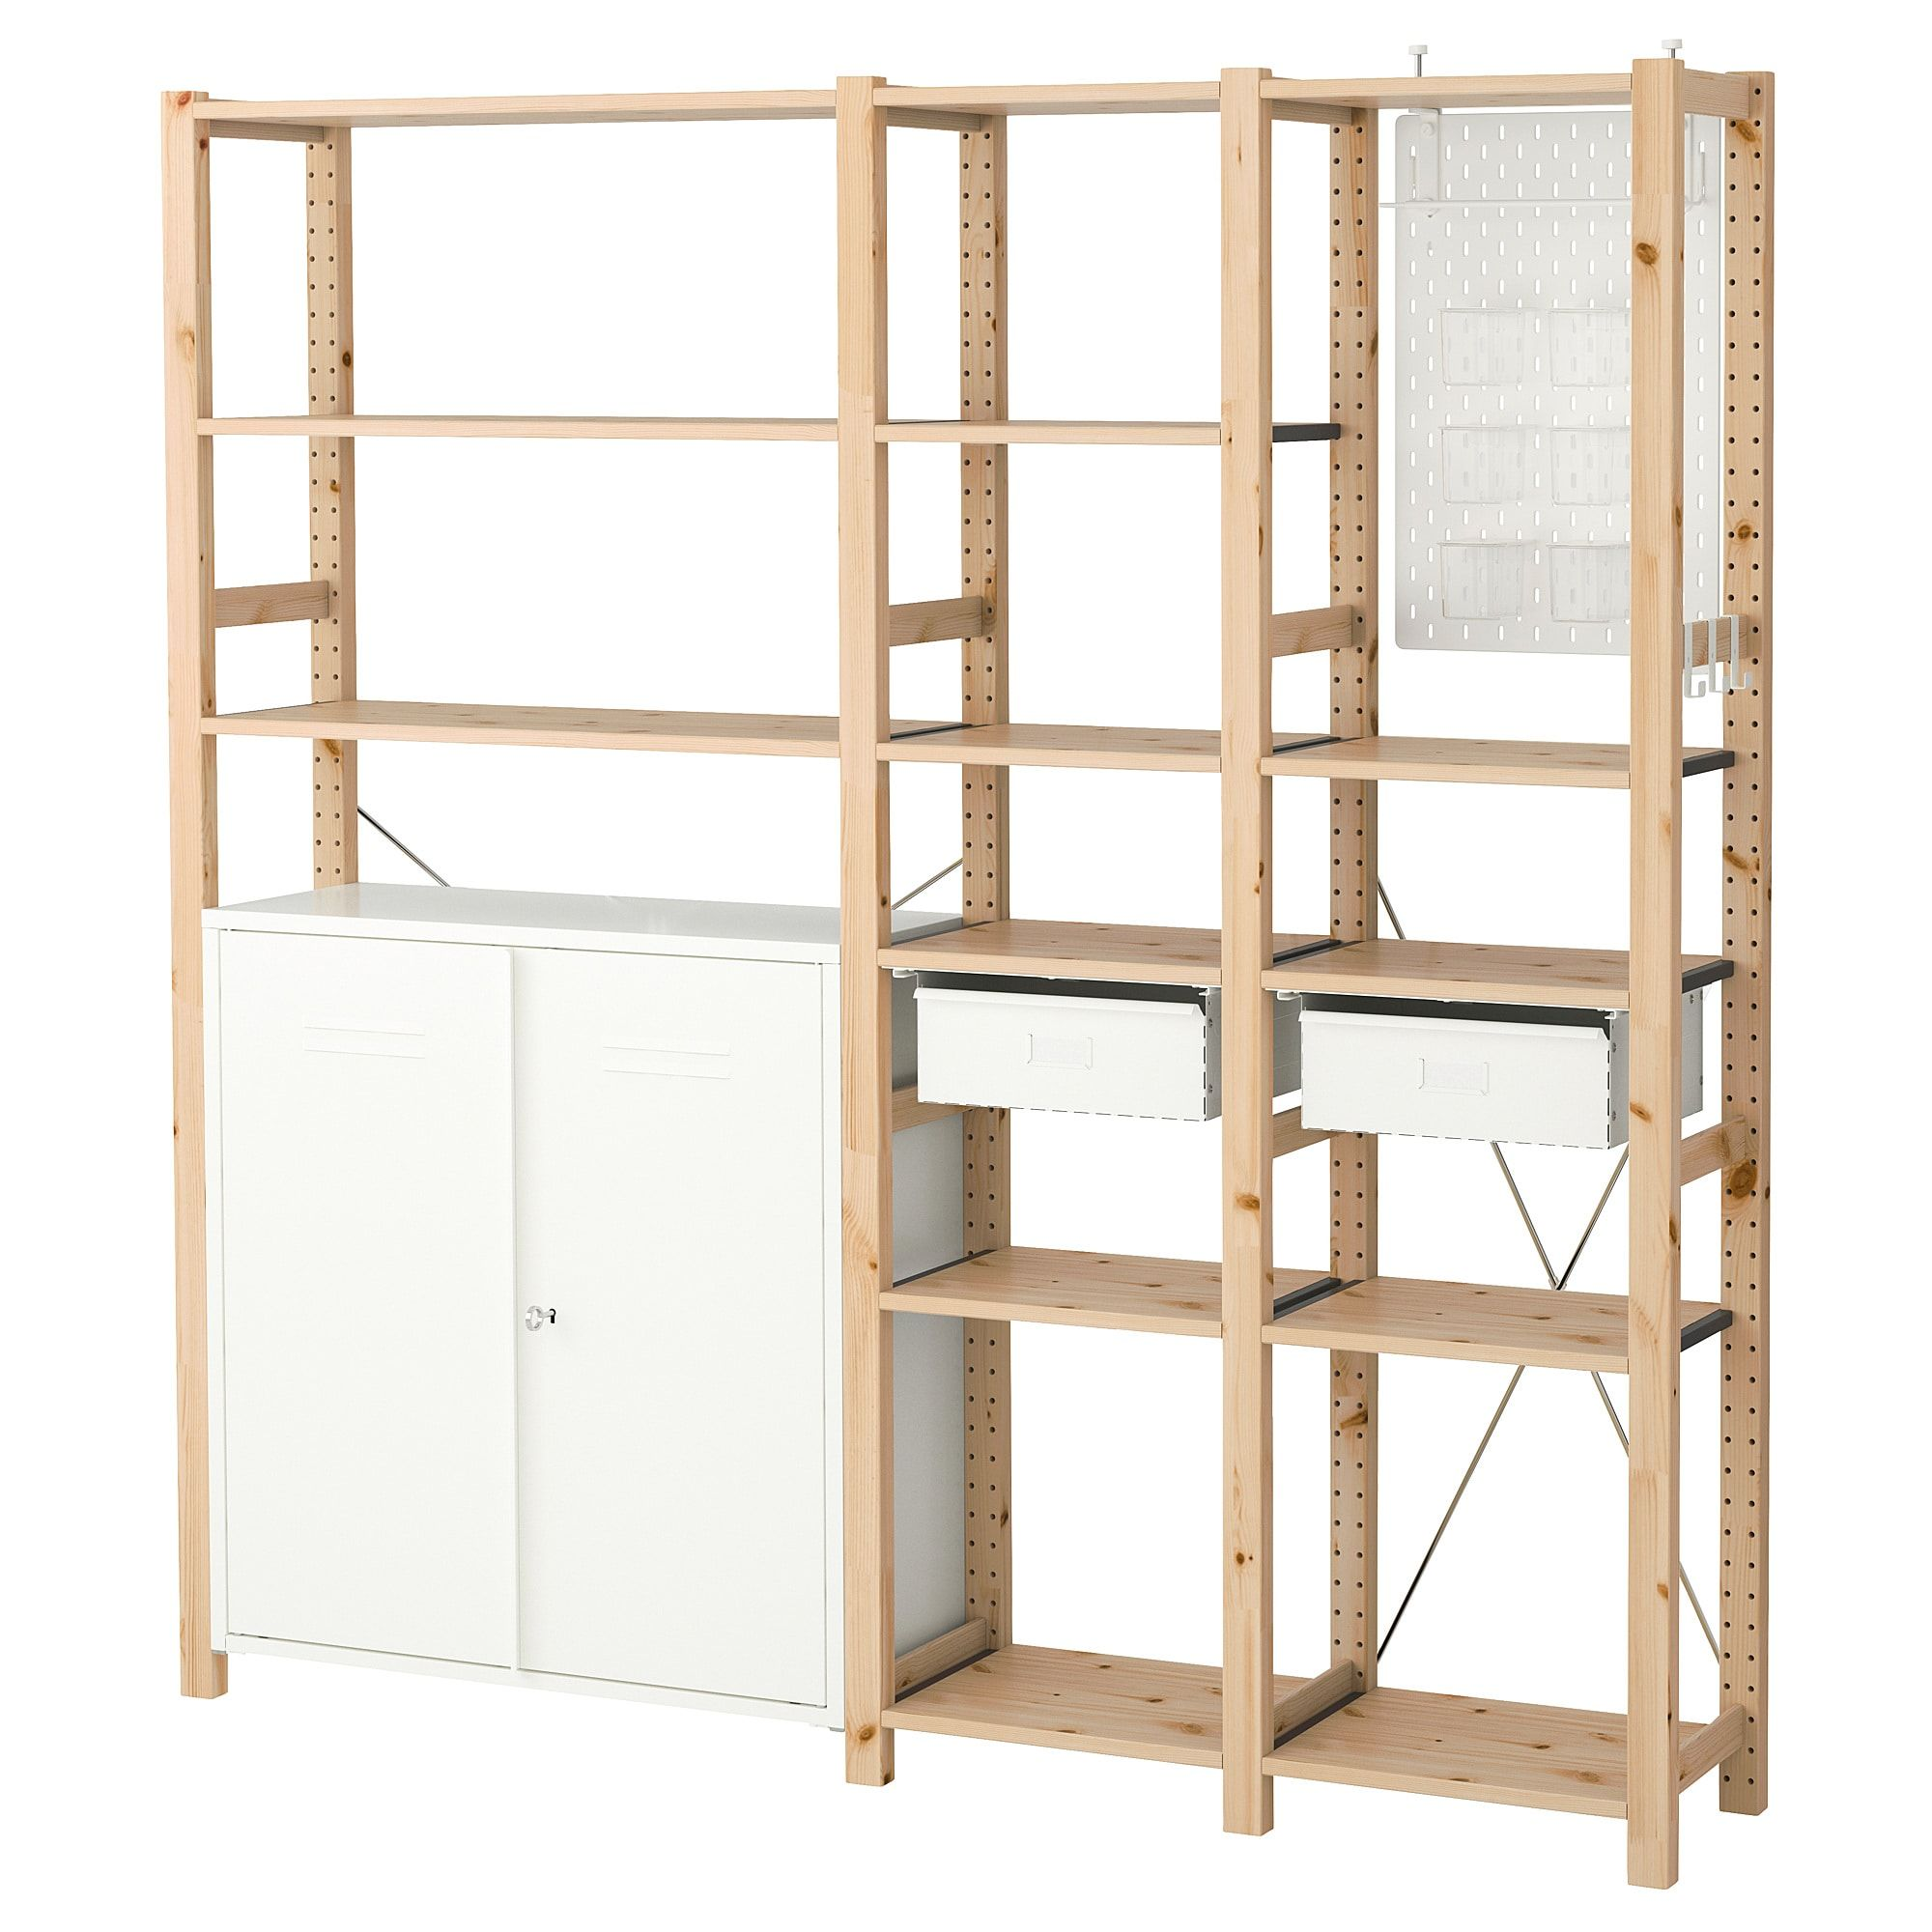 Ikea Us Furniture And Home Furnishings Shelves Shelving Unit Small Shelving Unit